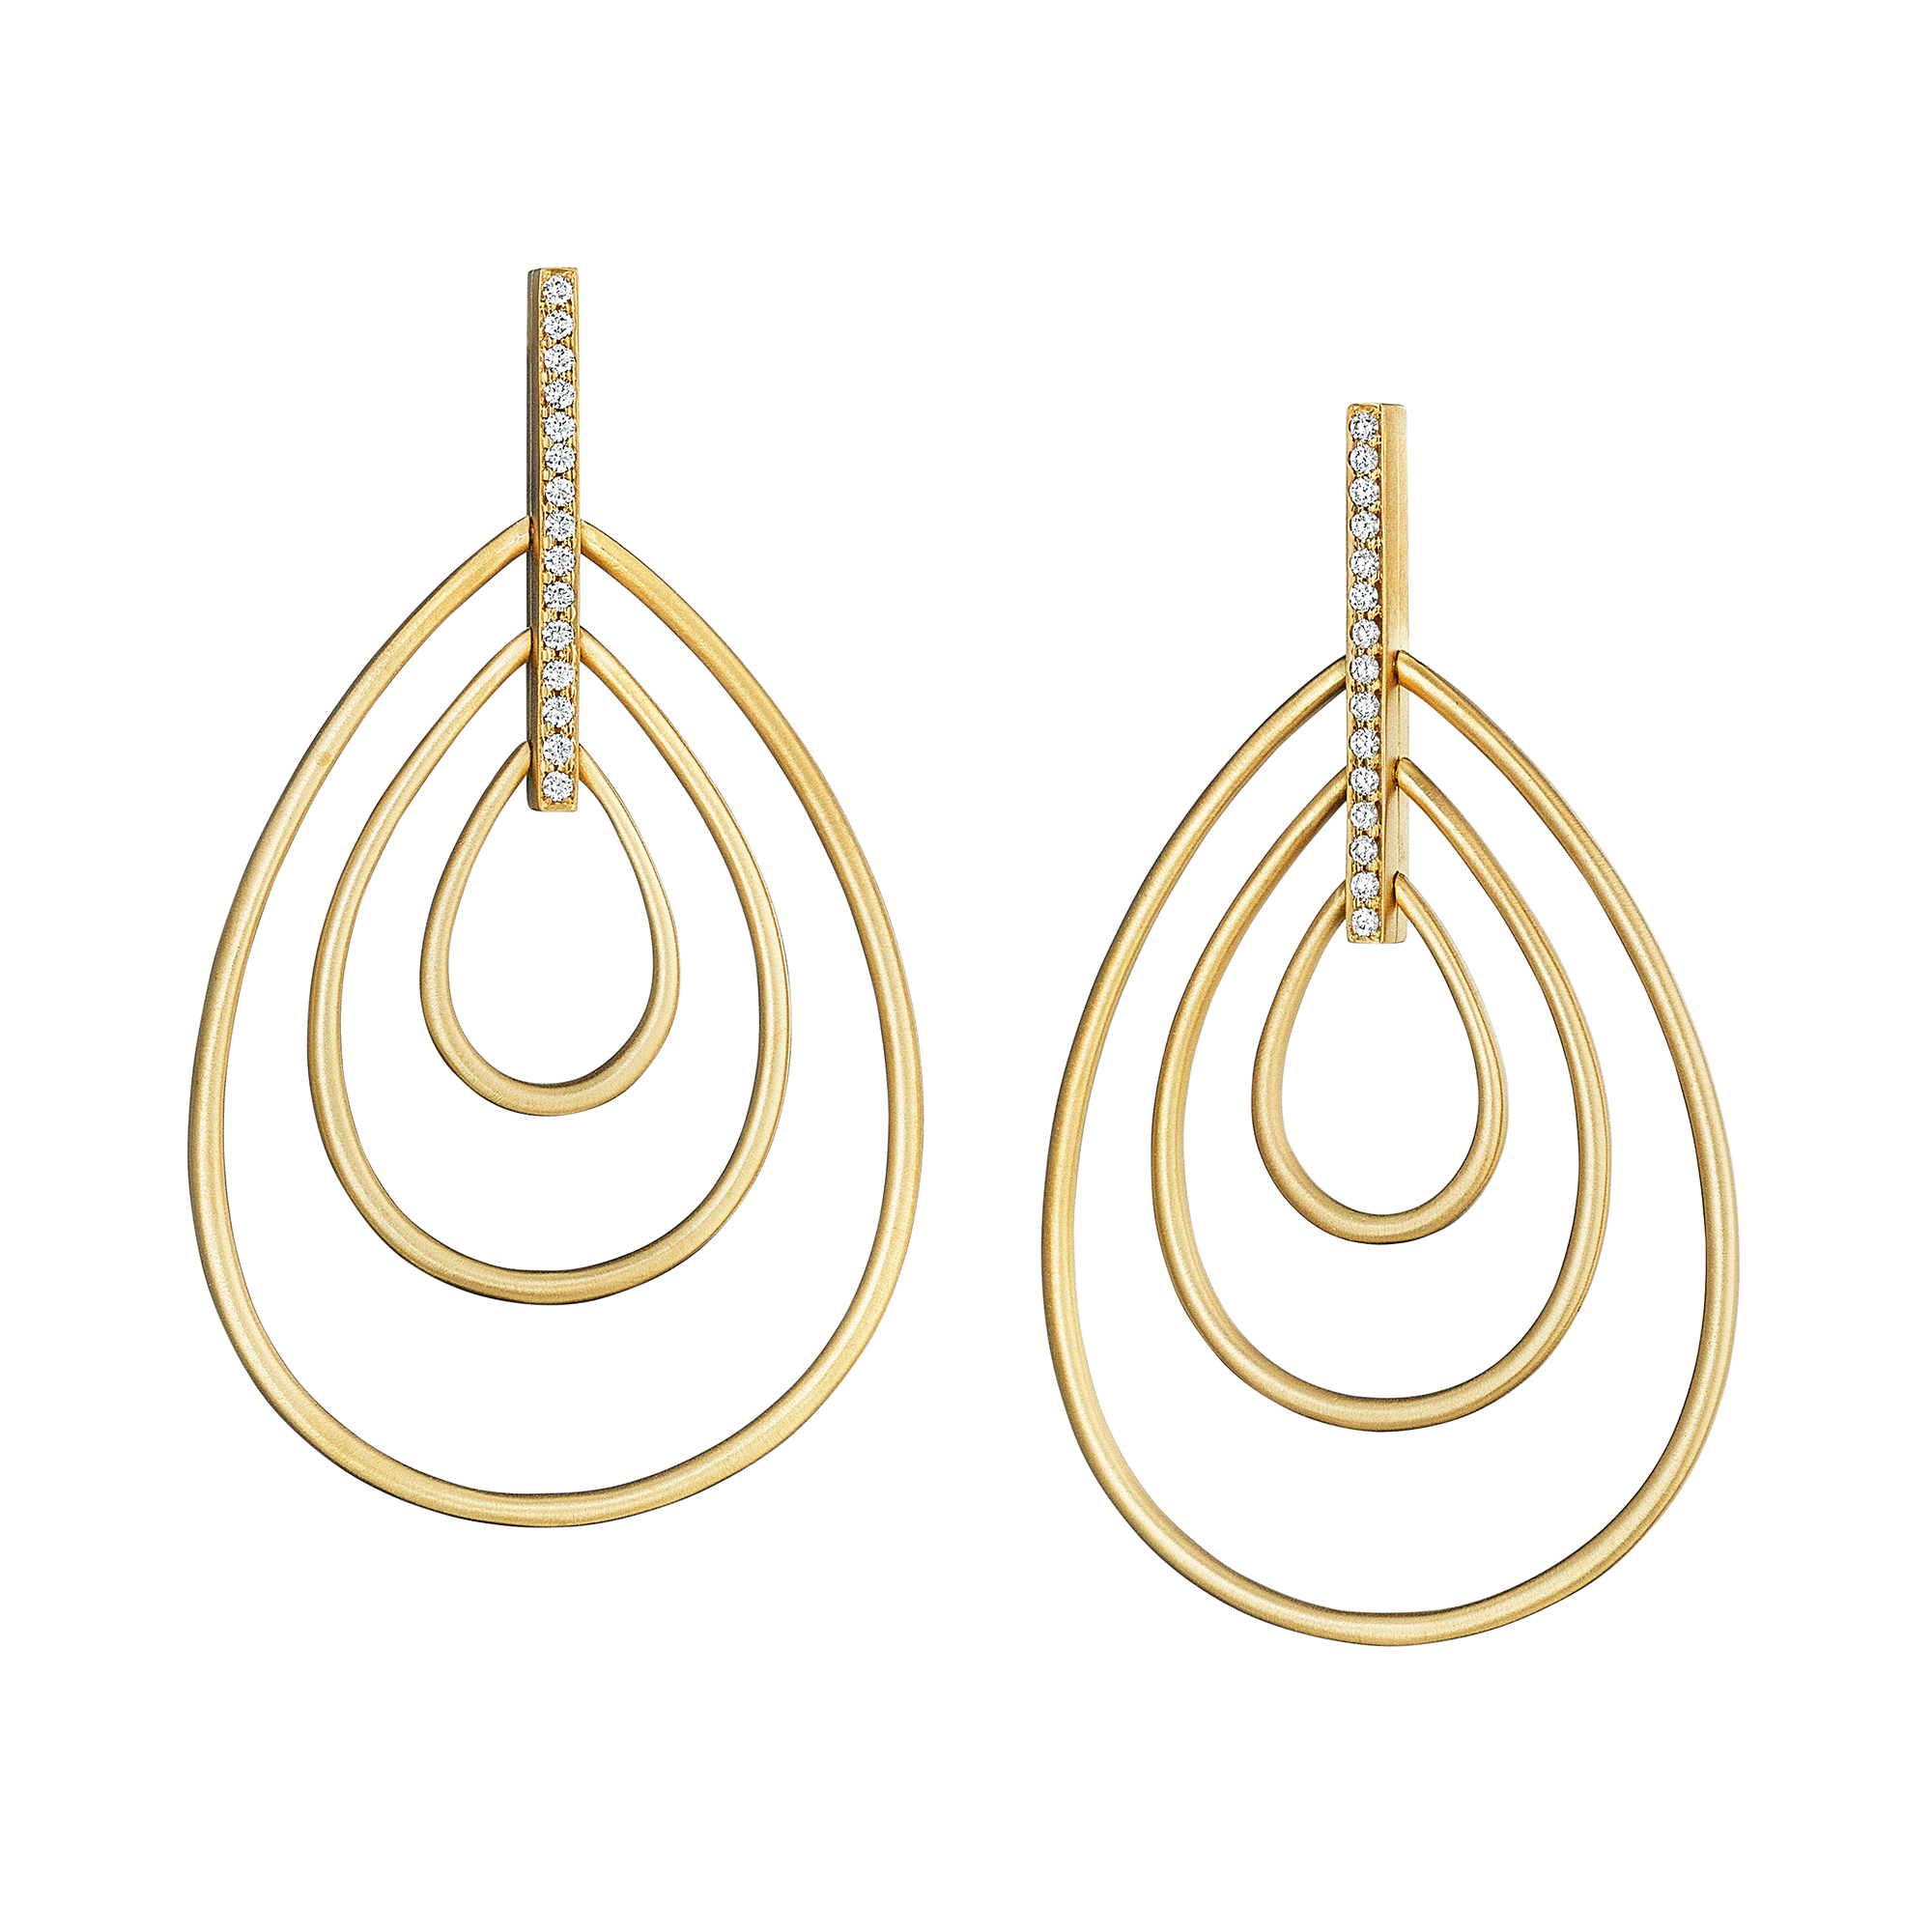 Carelle Diamond Trio Moderne Drop Earrings